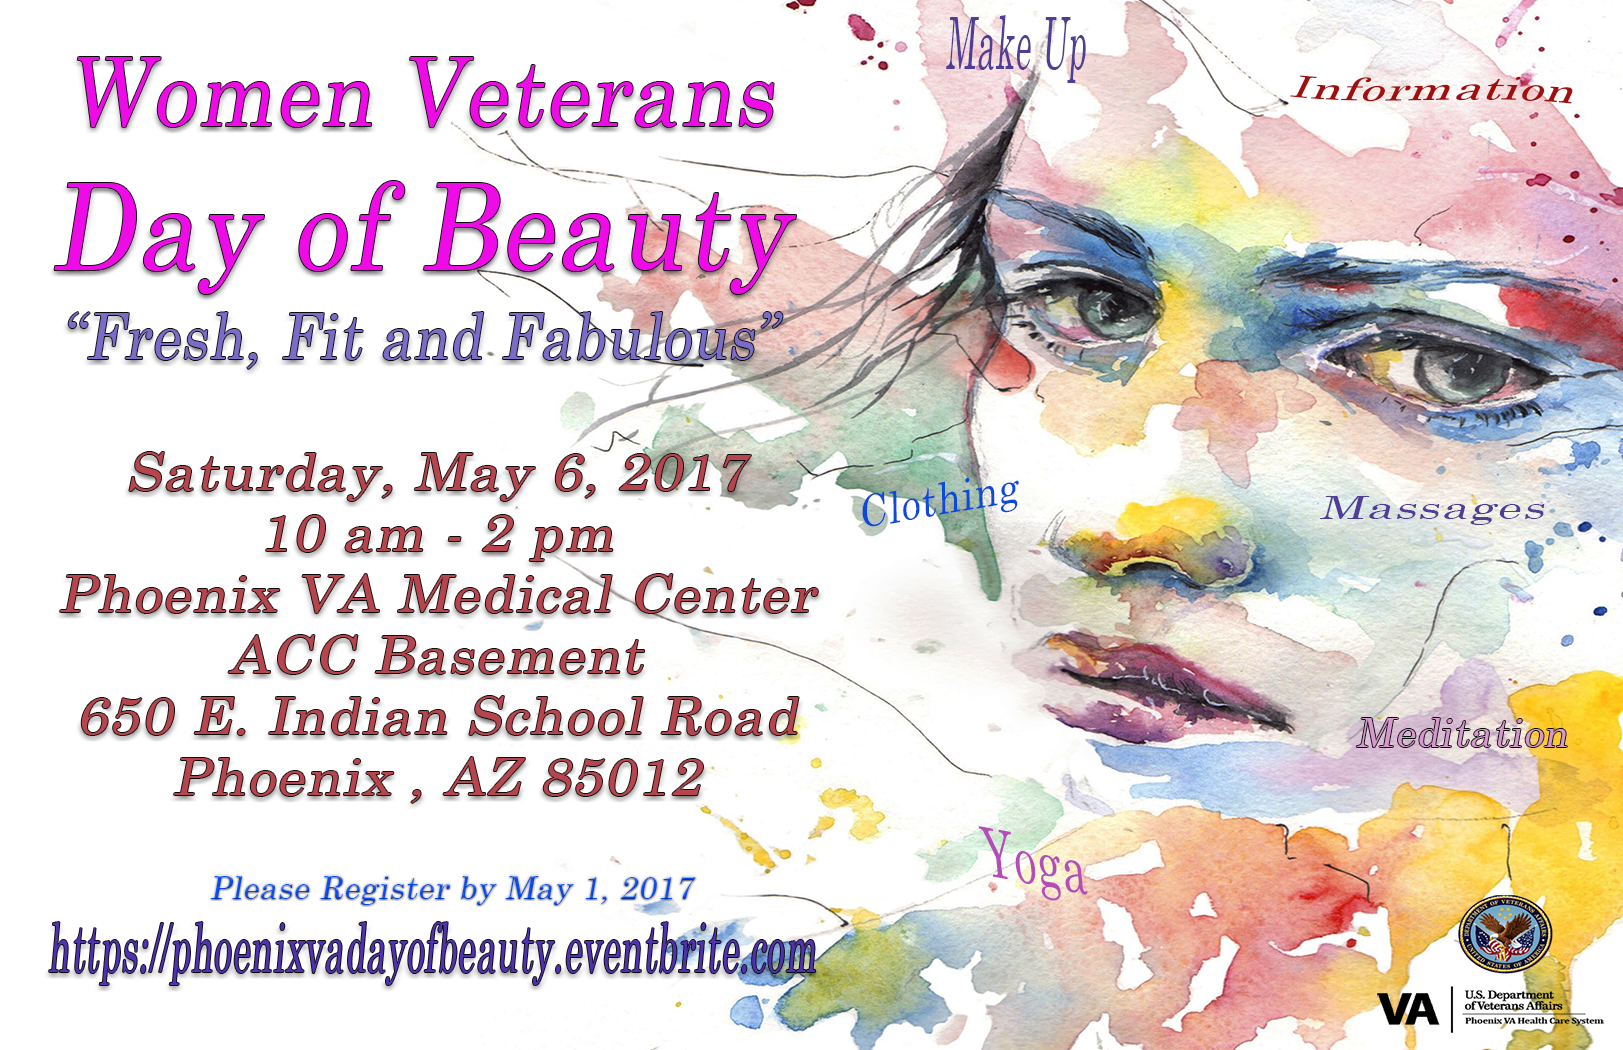 veterans first ltd women veterans day of beauty u2013 may 6 2017